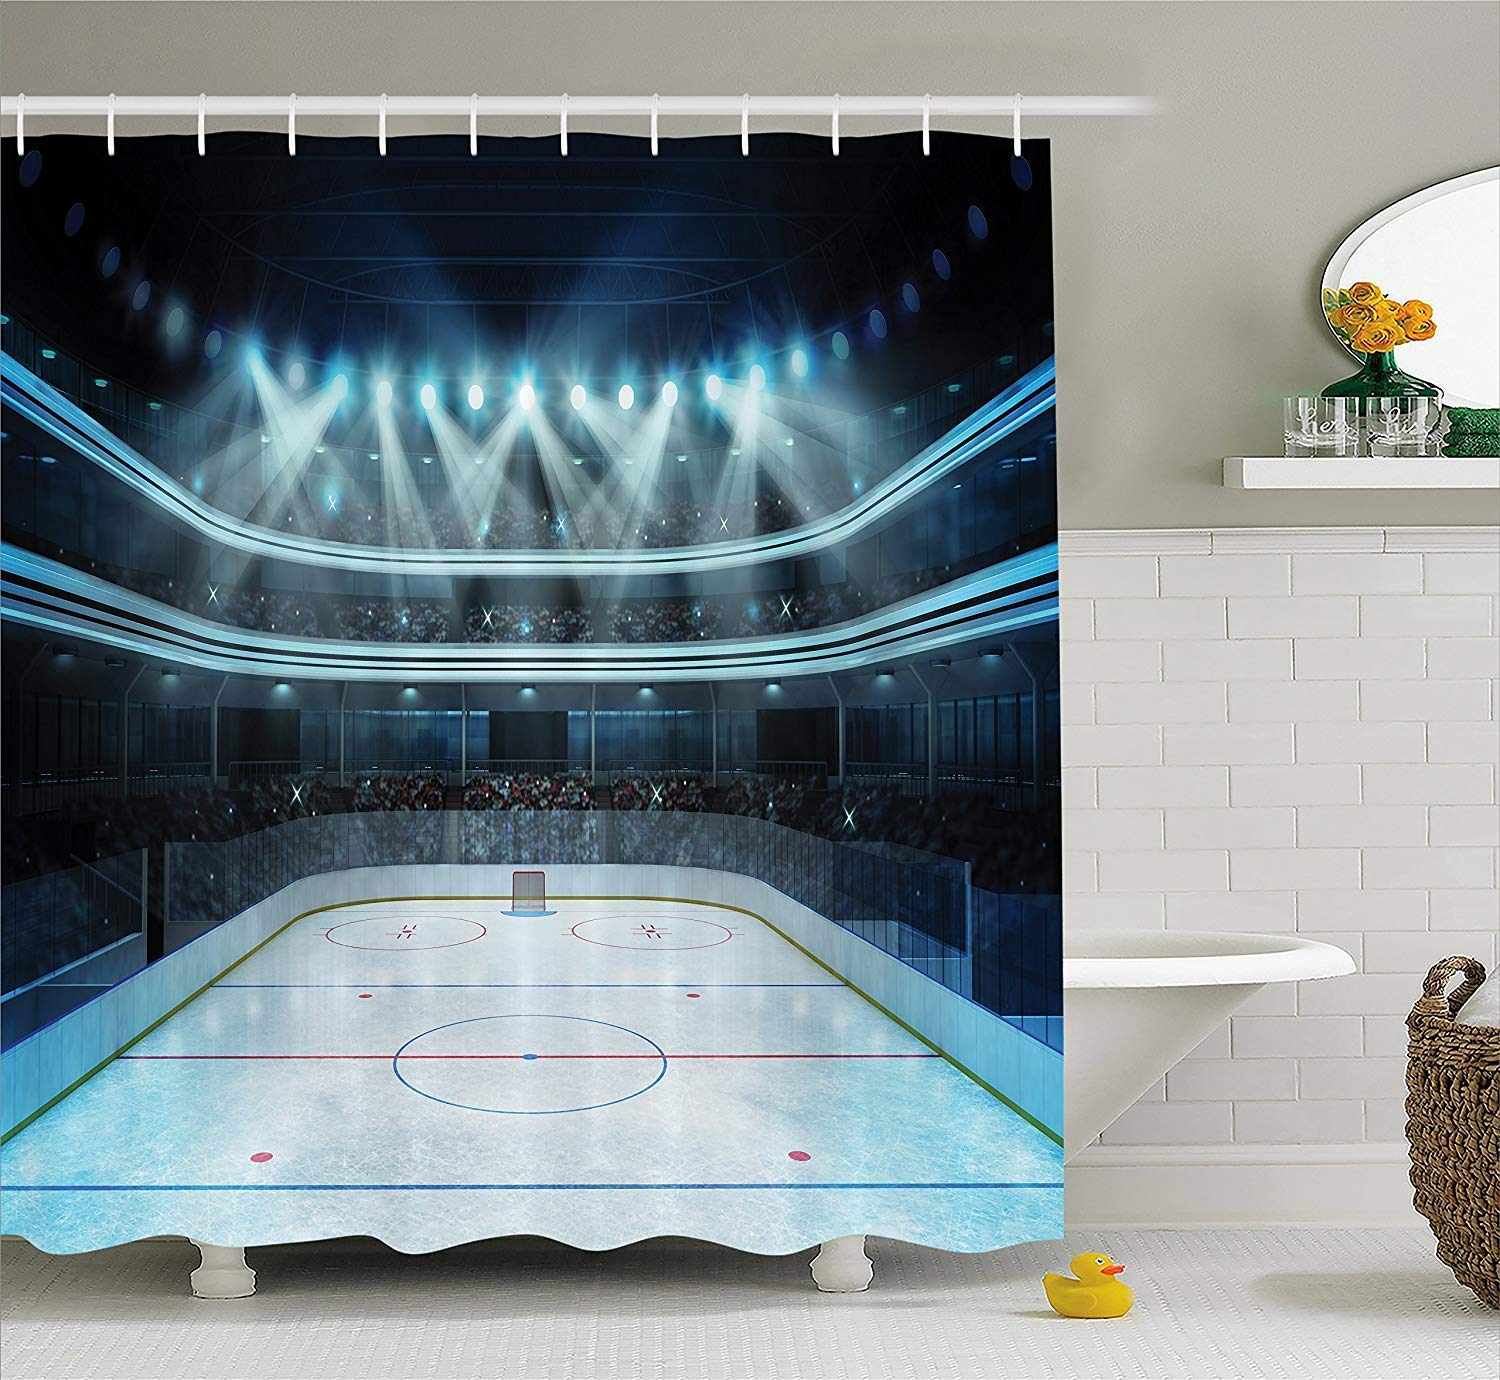 Presock Duschvorhänge, Hockey Shower Curtain, Photo of a Sports Arena Full of People Fans Audience Tournament Championship Match, Cloth Fabric Bathroom Decor Set with Hooks,60 * 72inch, Multicolor